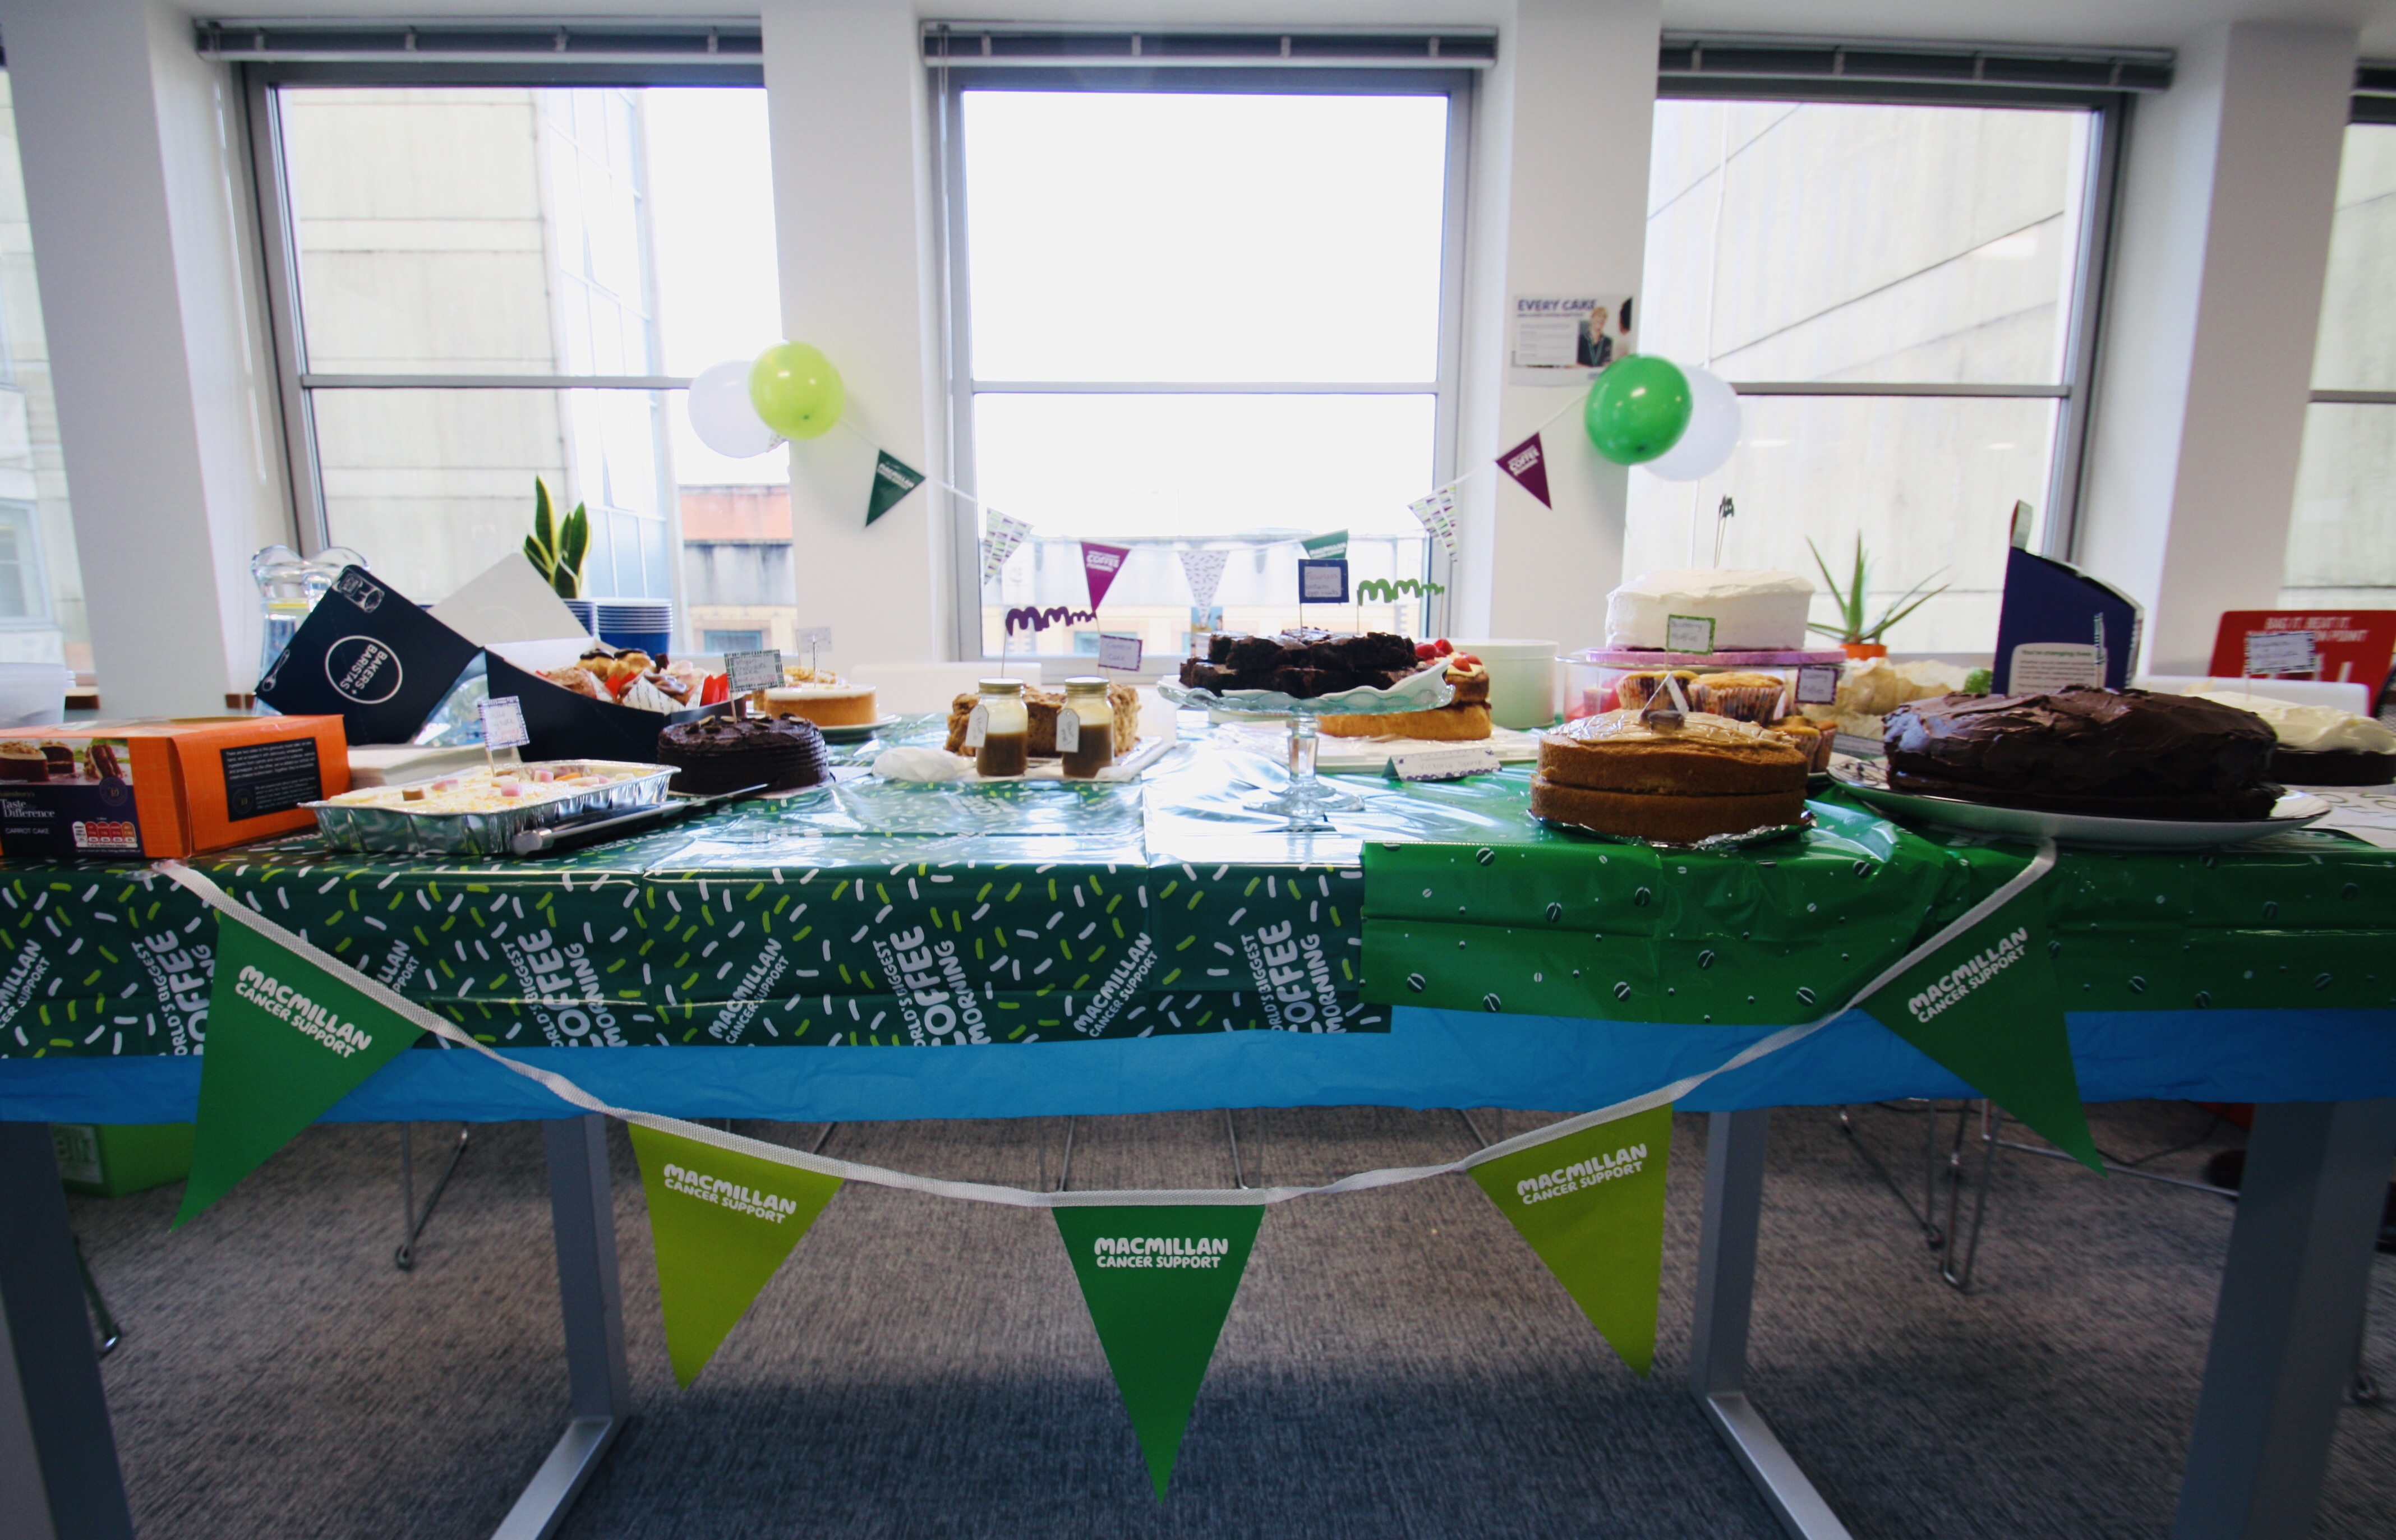 Macmillan Cancer Support UK